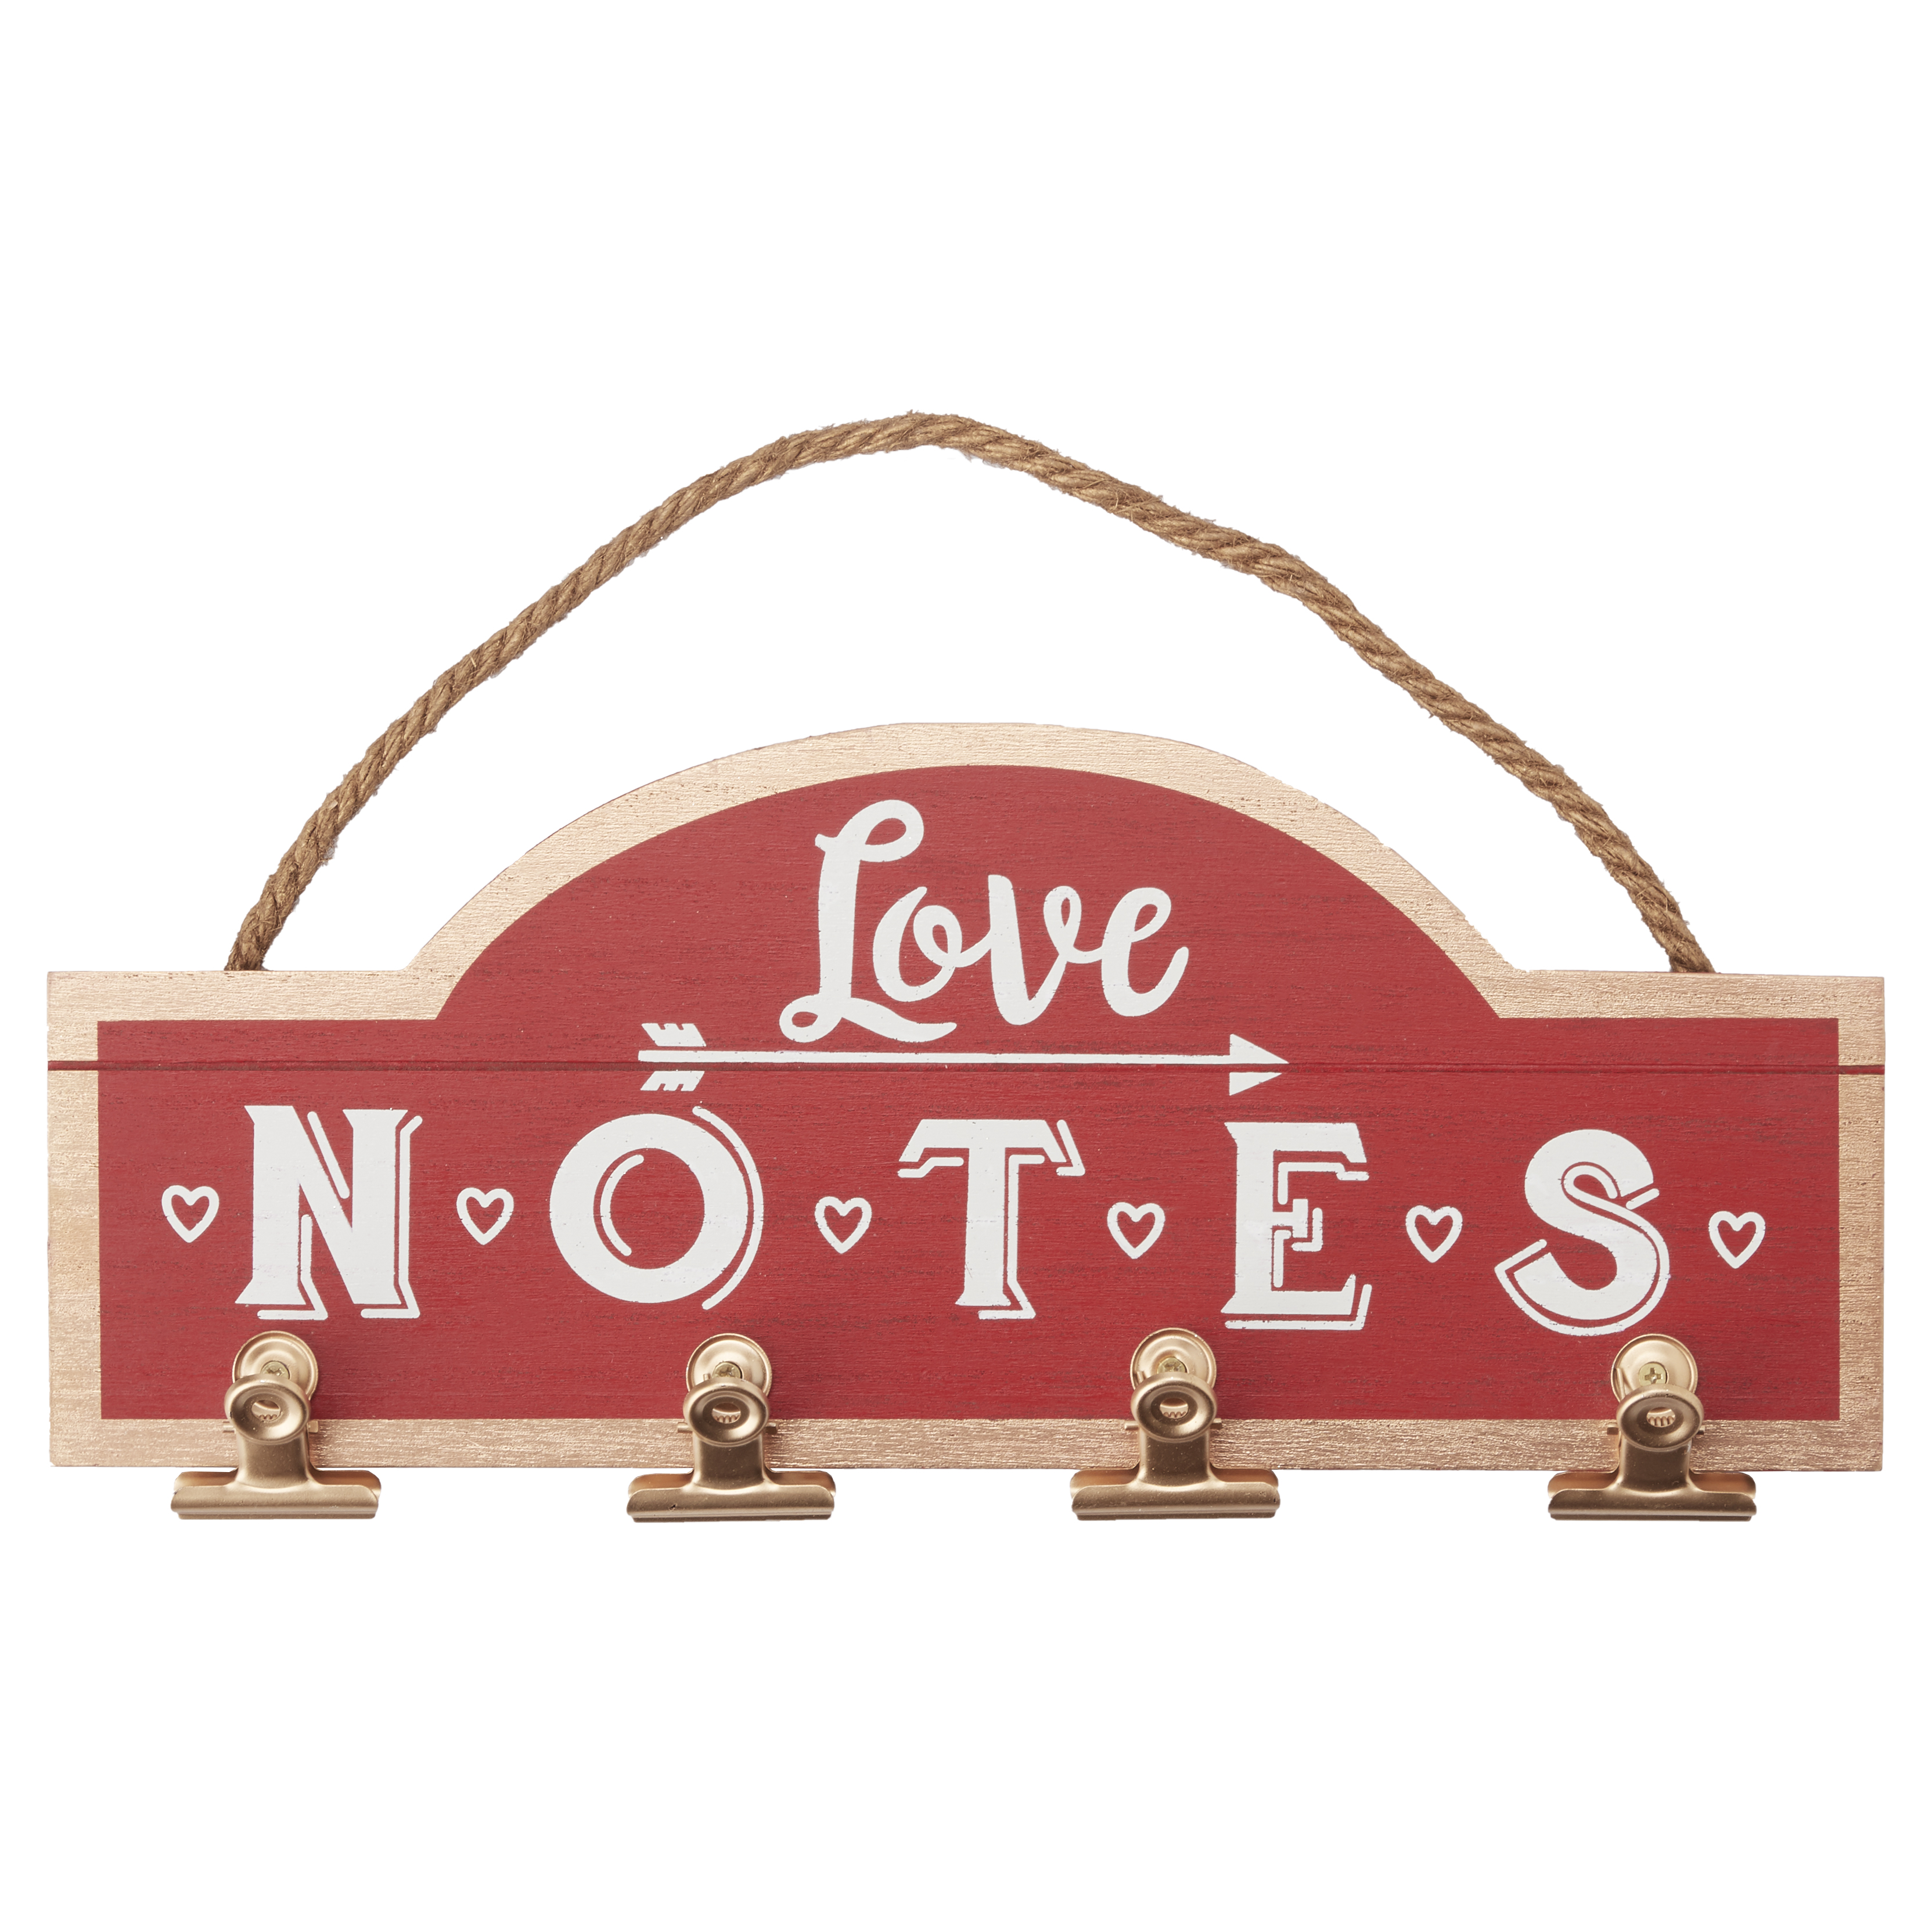 Way to Celebrate Valentine's Day Wall Hanging Decor, Love Notes